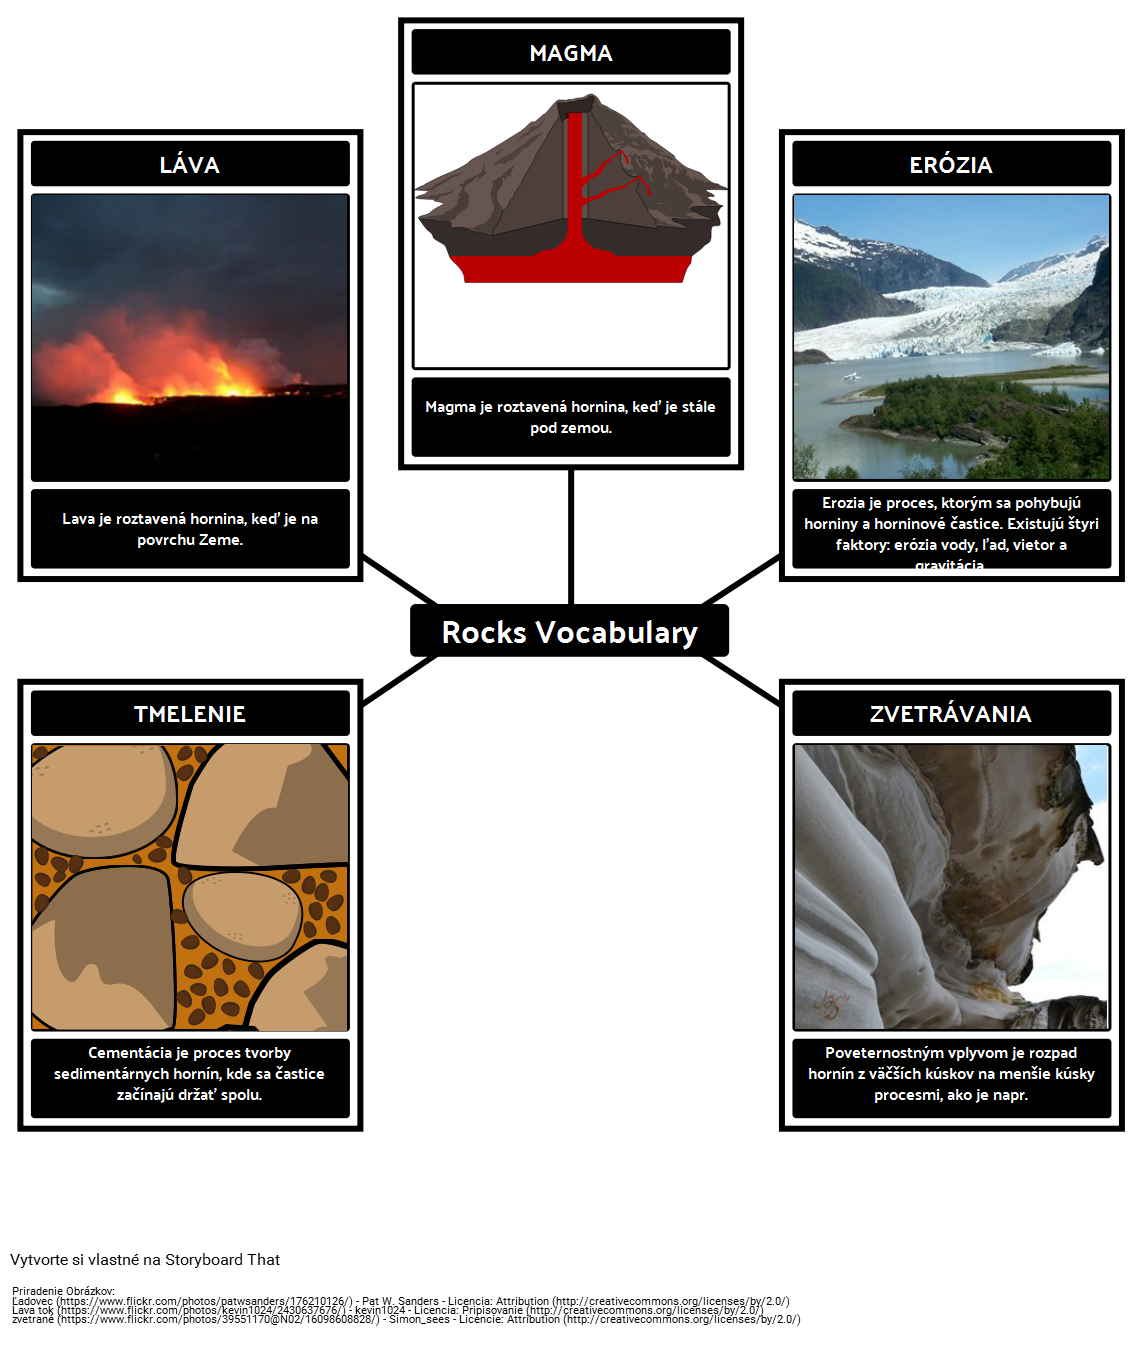 Rocks Vocabulary